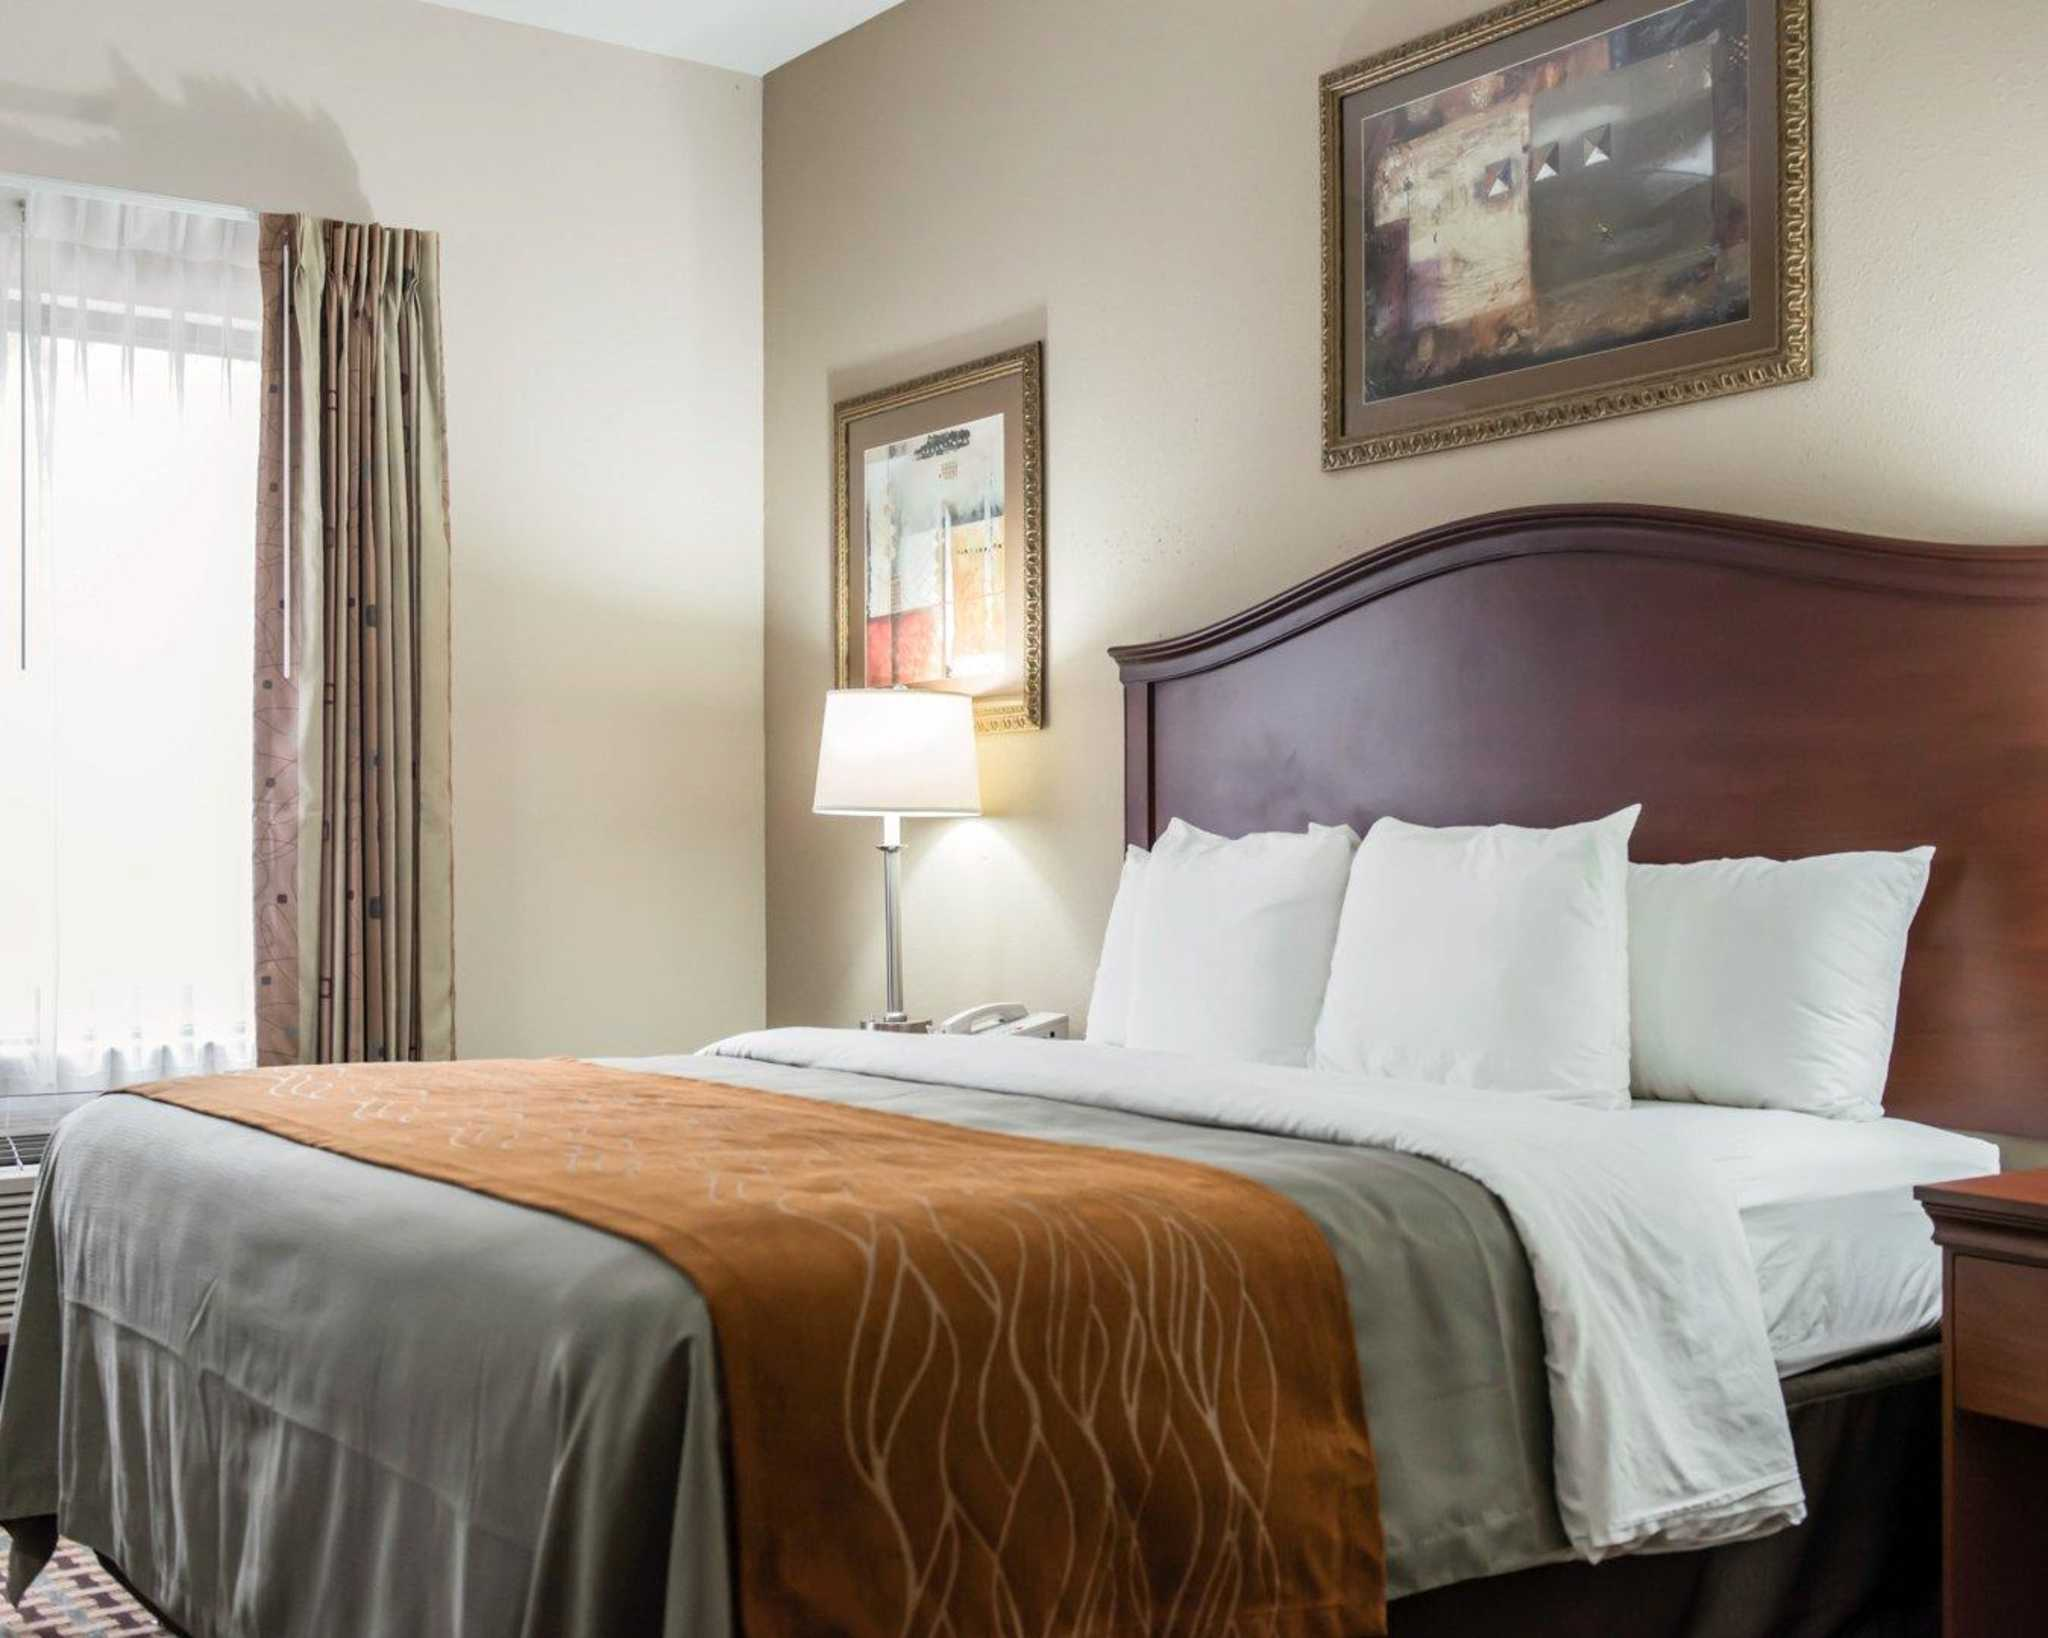 Comfort Inn & Suites Midway - Tallahassee West image 6